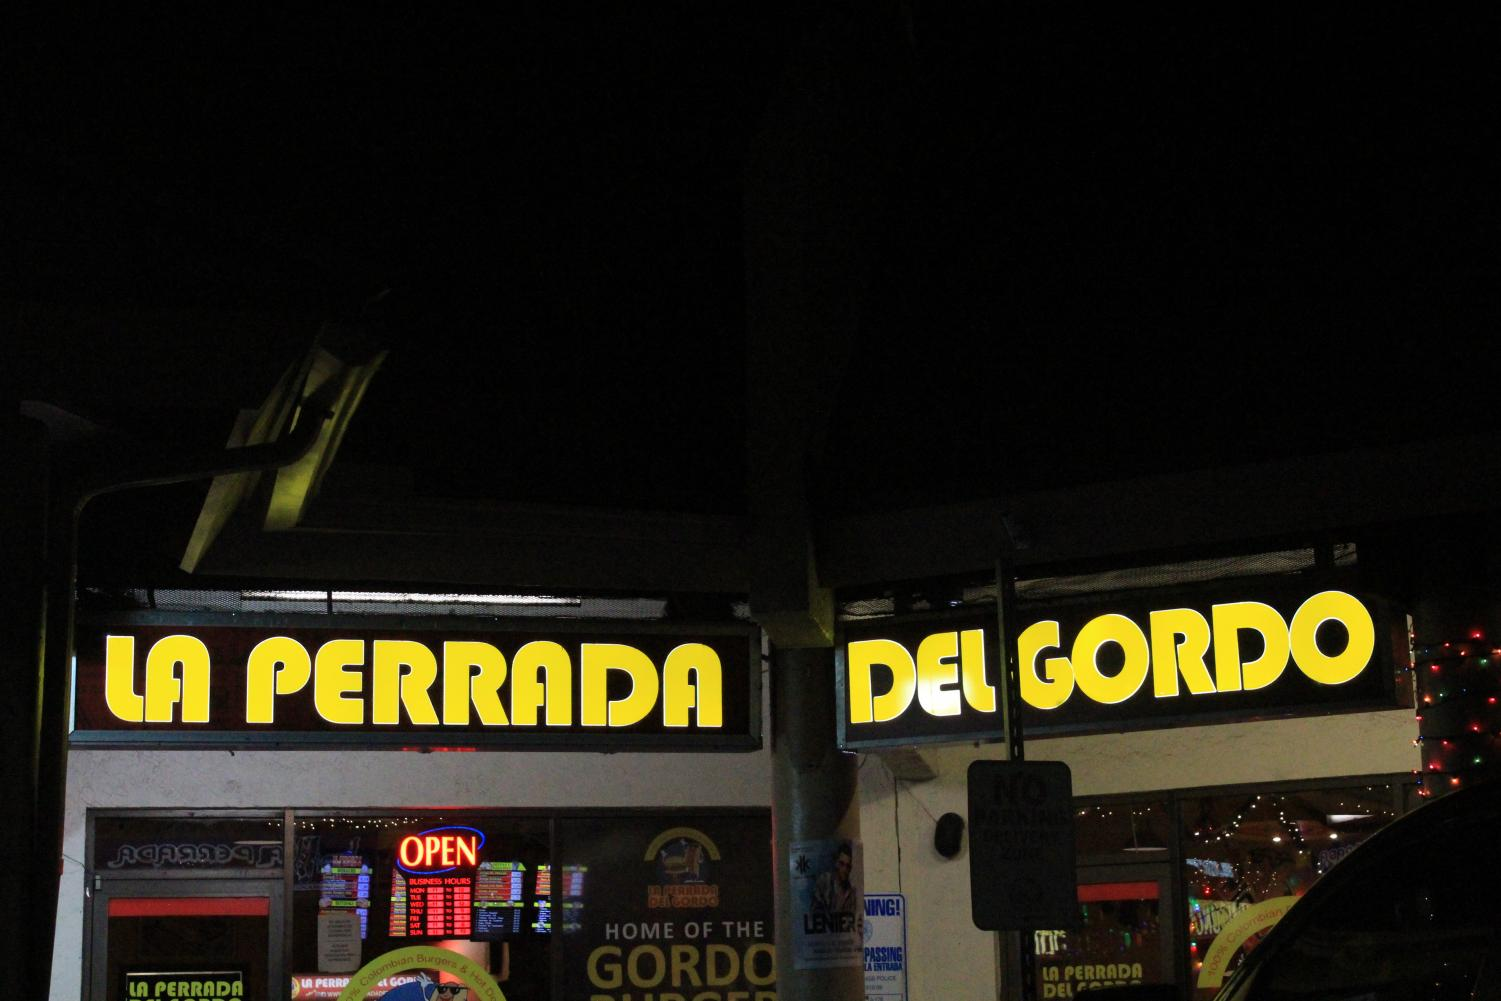 La Perrada del Gordo serves Colombian food.